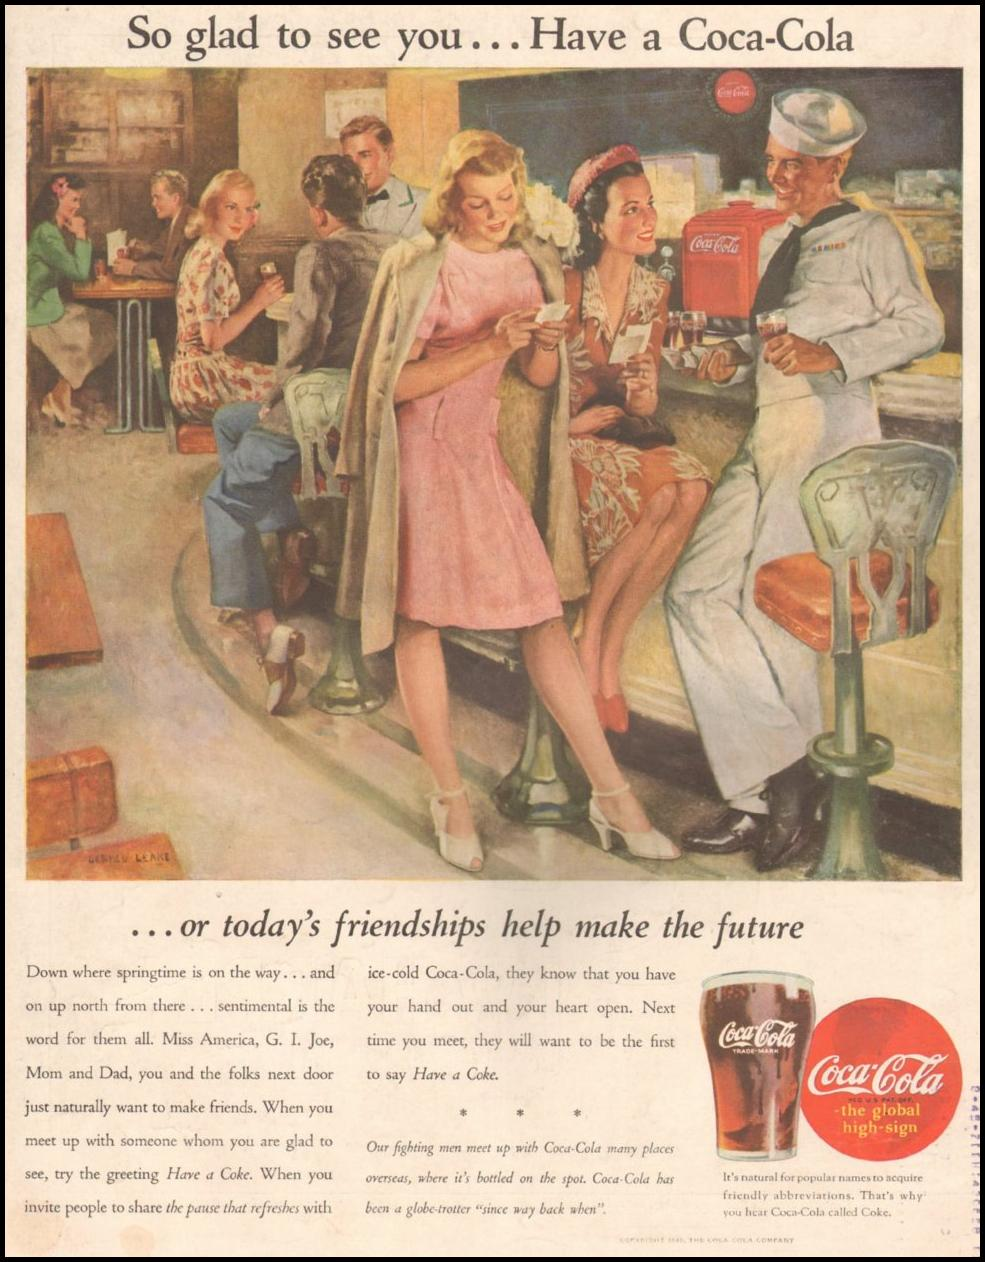 COCA-COLA LIFE 03/12/1945 BACK COVER